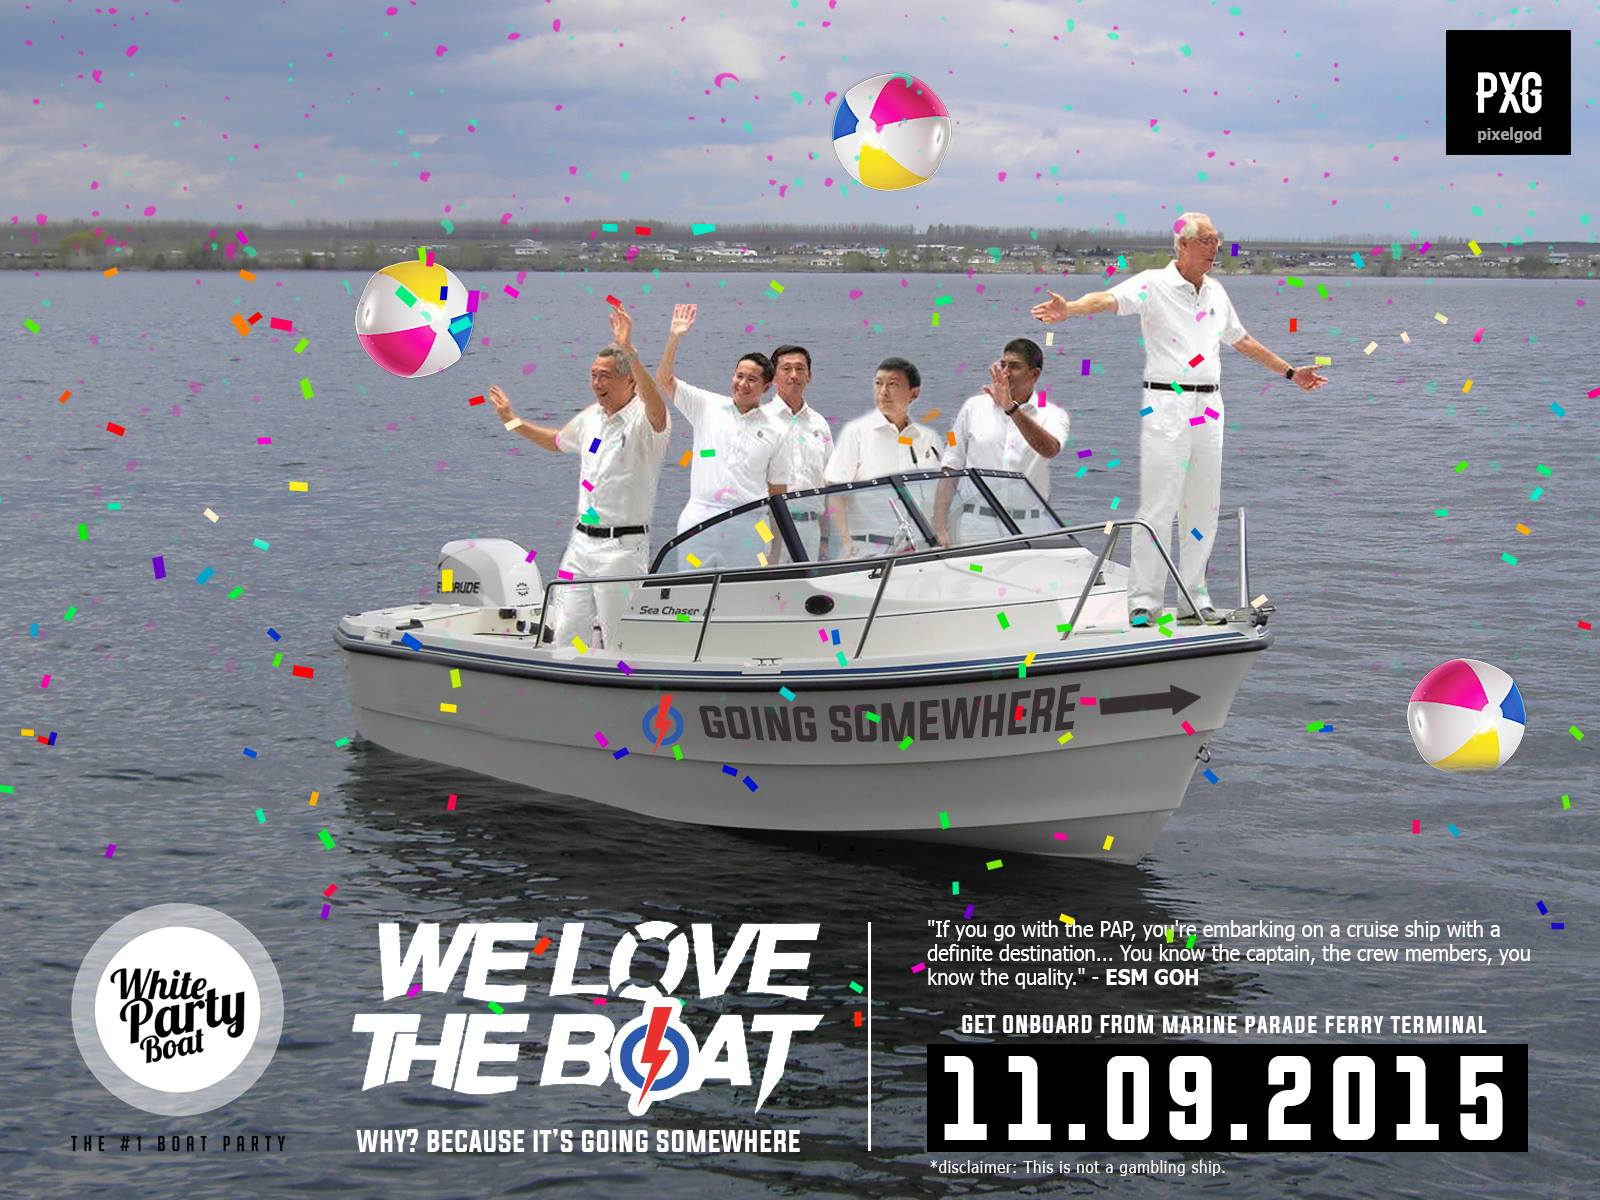 Psst... there is a secret boat party going on. Invites only. Ai lai mai?